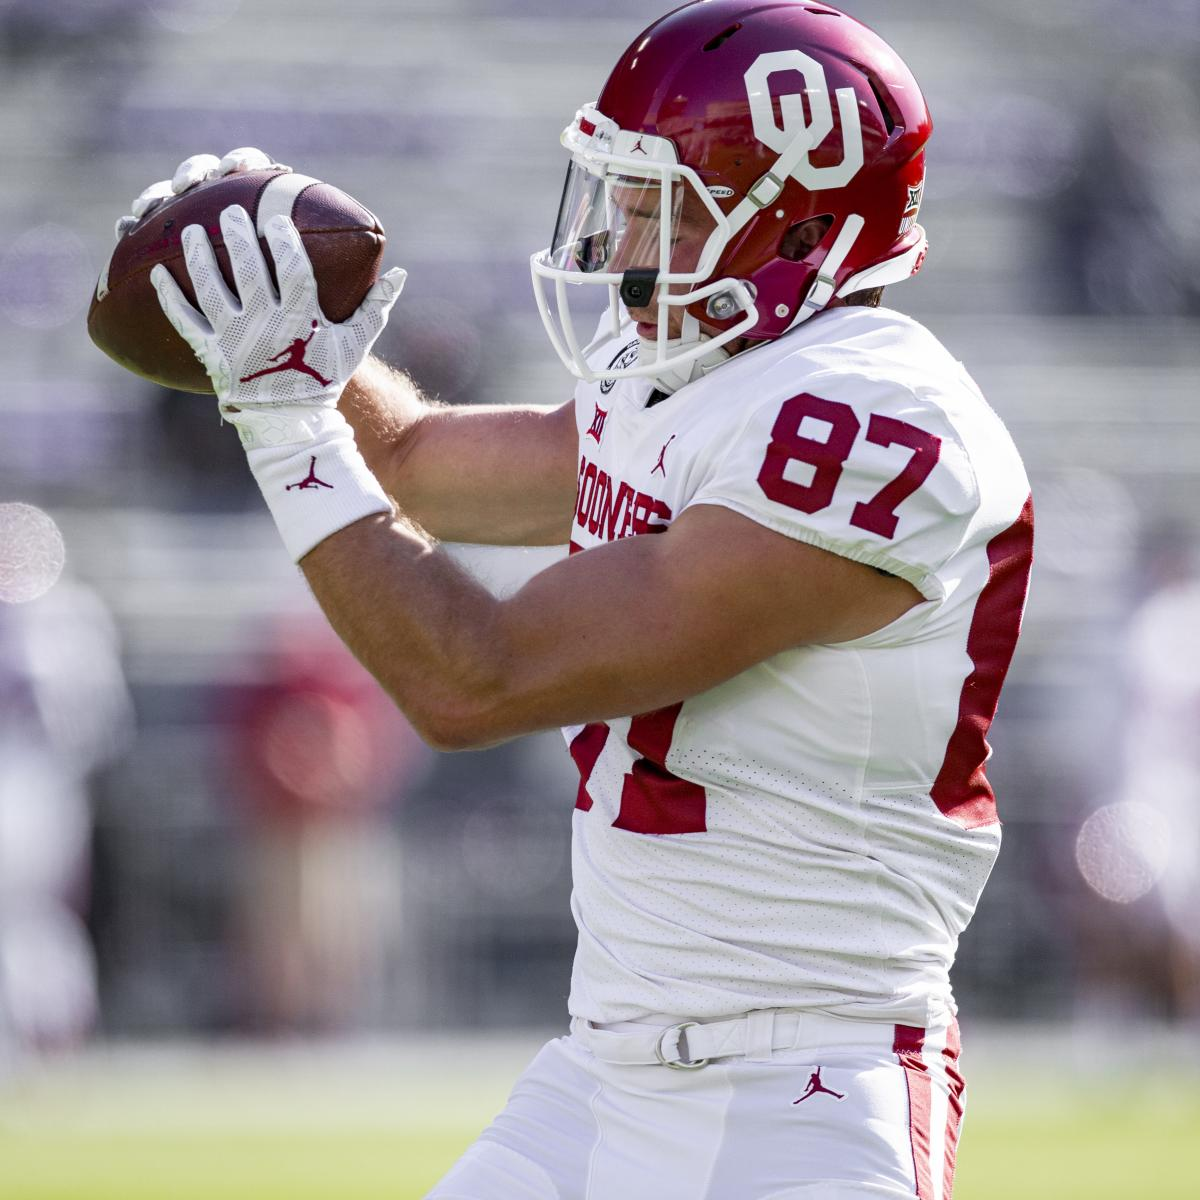 Walker Brown's Lawyer: Fight with OU's Spencer Jones Caught on Video 'Justified'